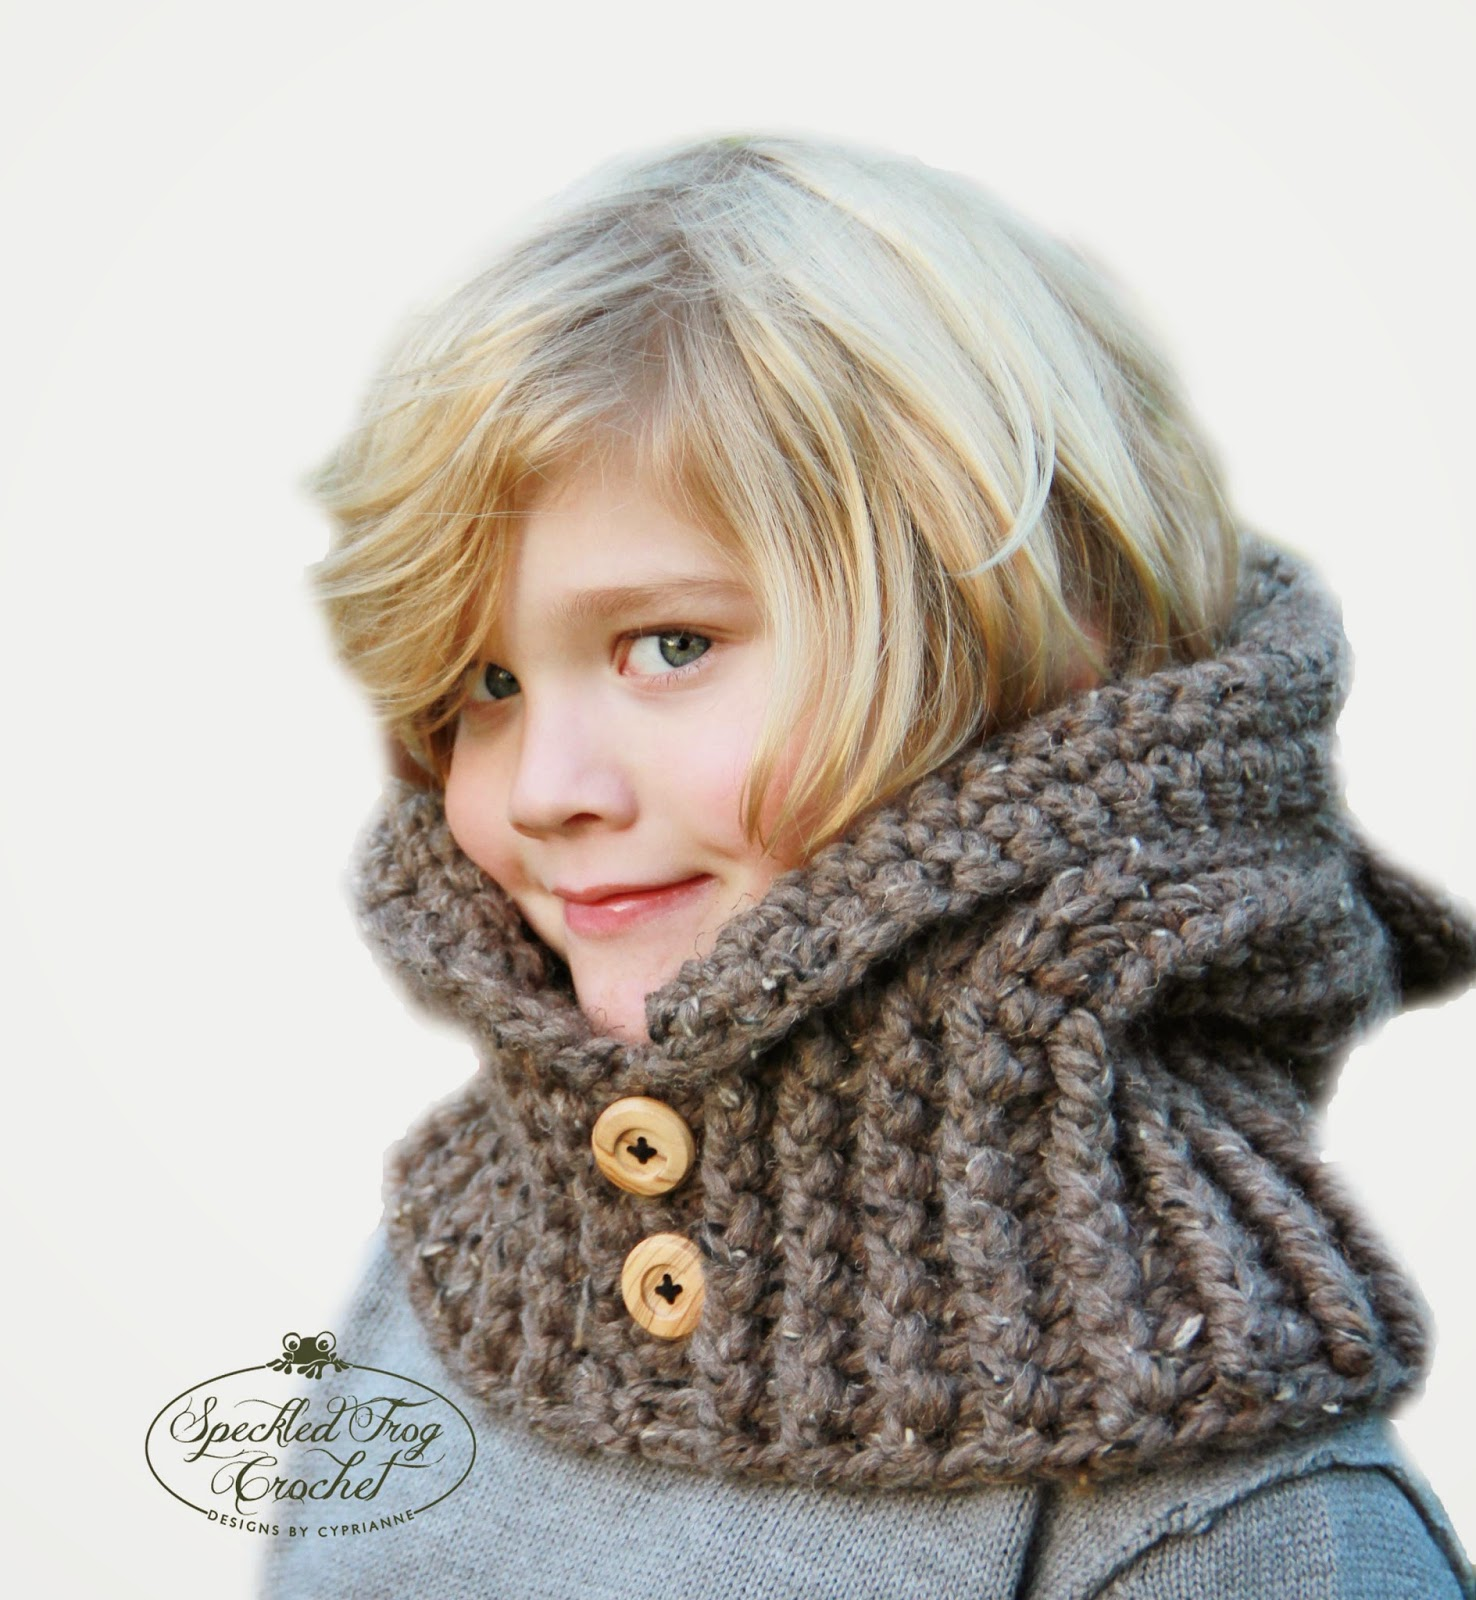 Knitting Pattern Hood With Ears : CROCHET HOODED BEAR COWL PATTERN